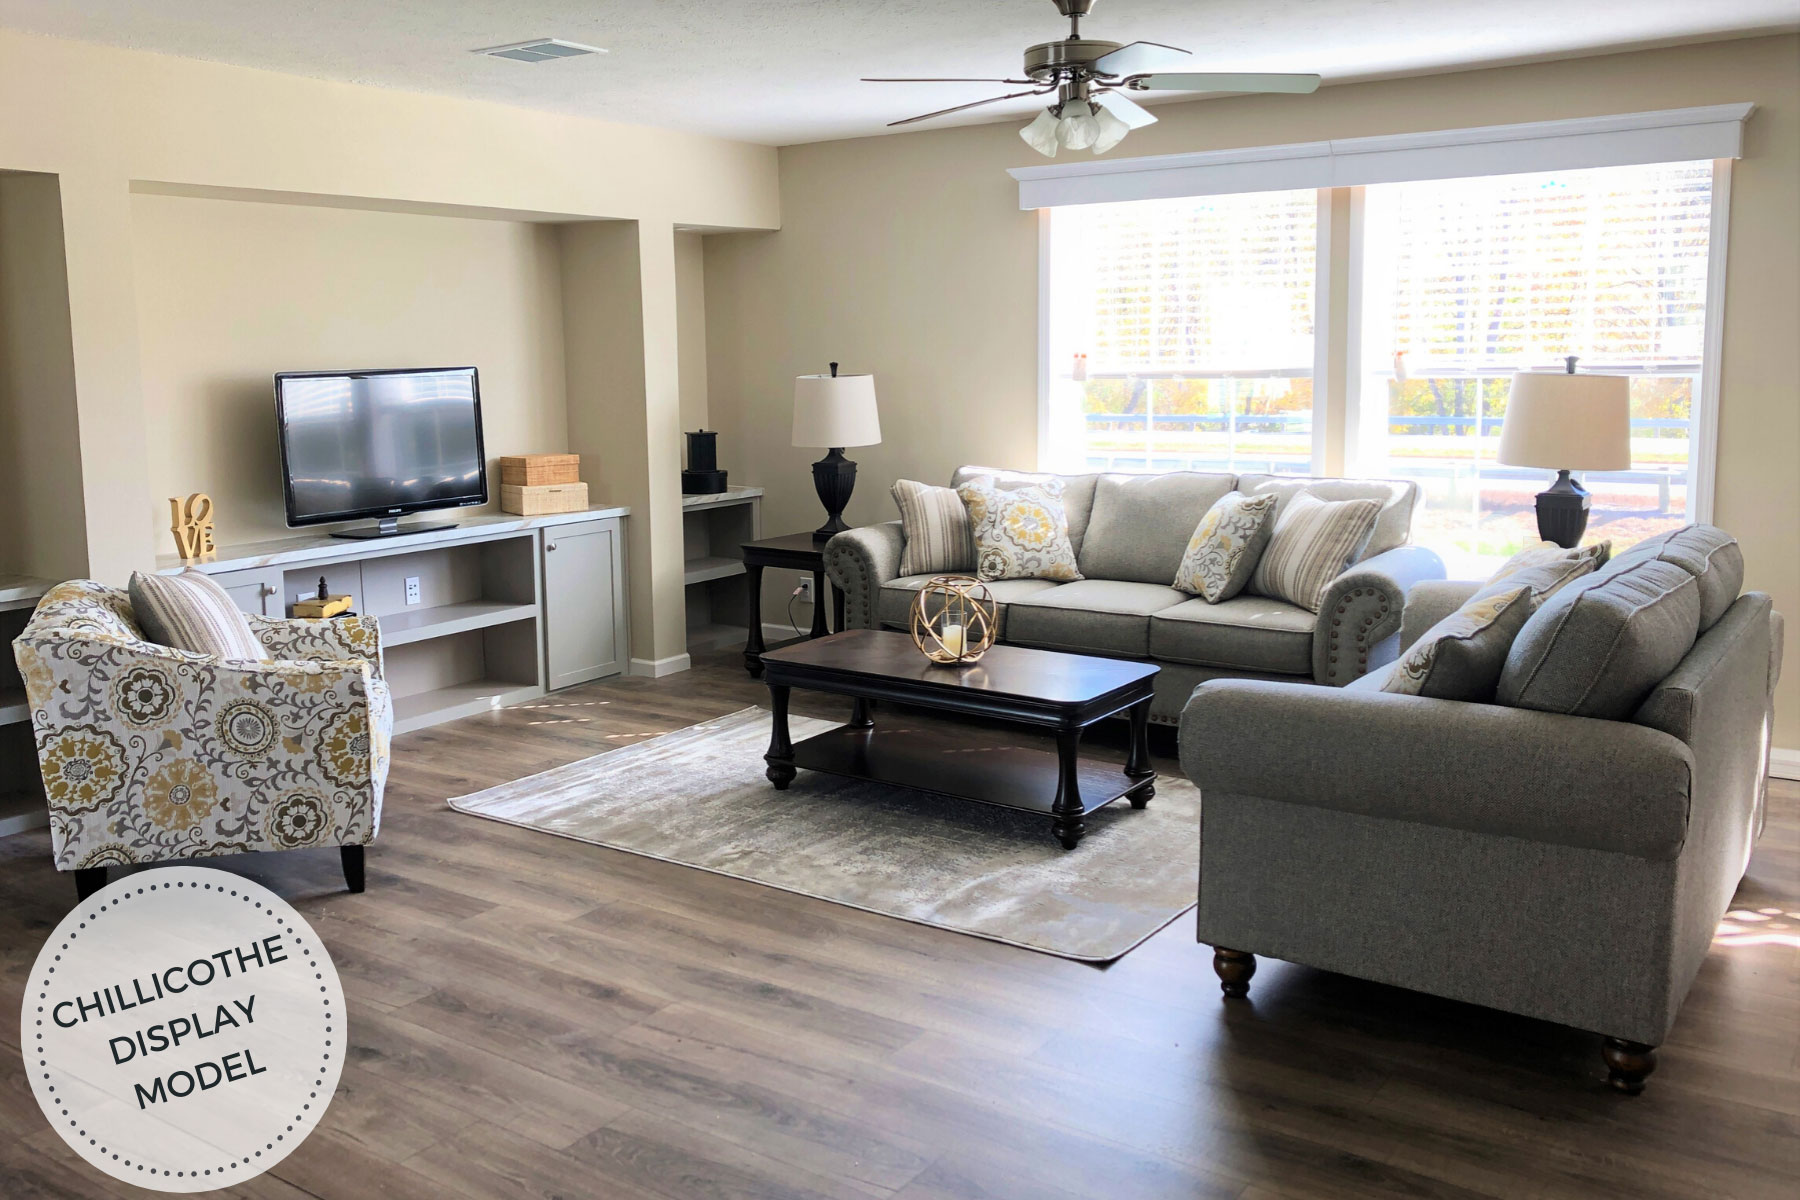 Champion-Apex-Gold-Star-2860-235--Chillicothe-Living-Room-1